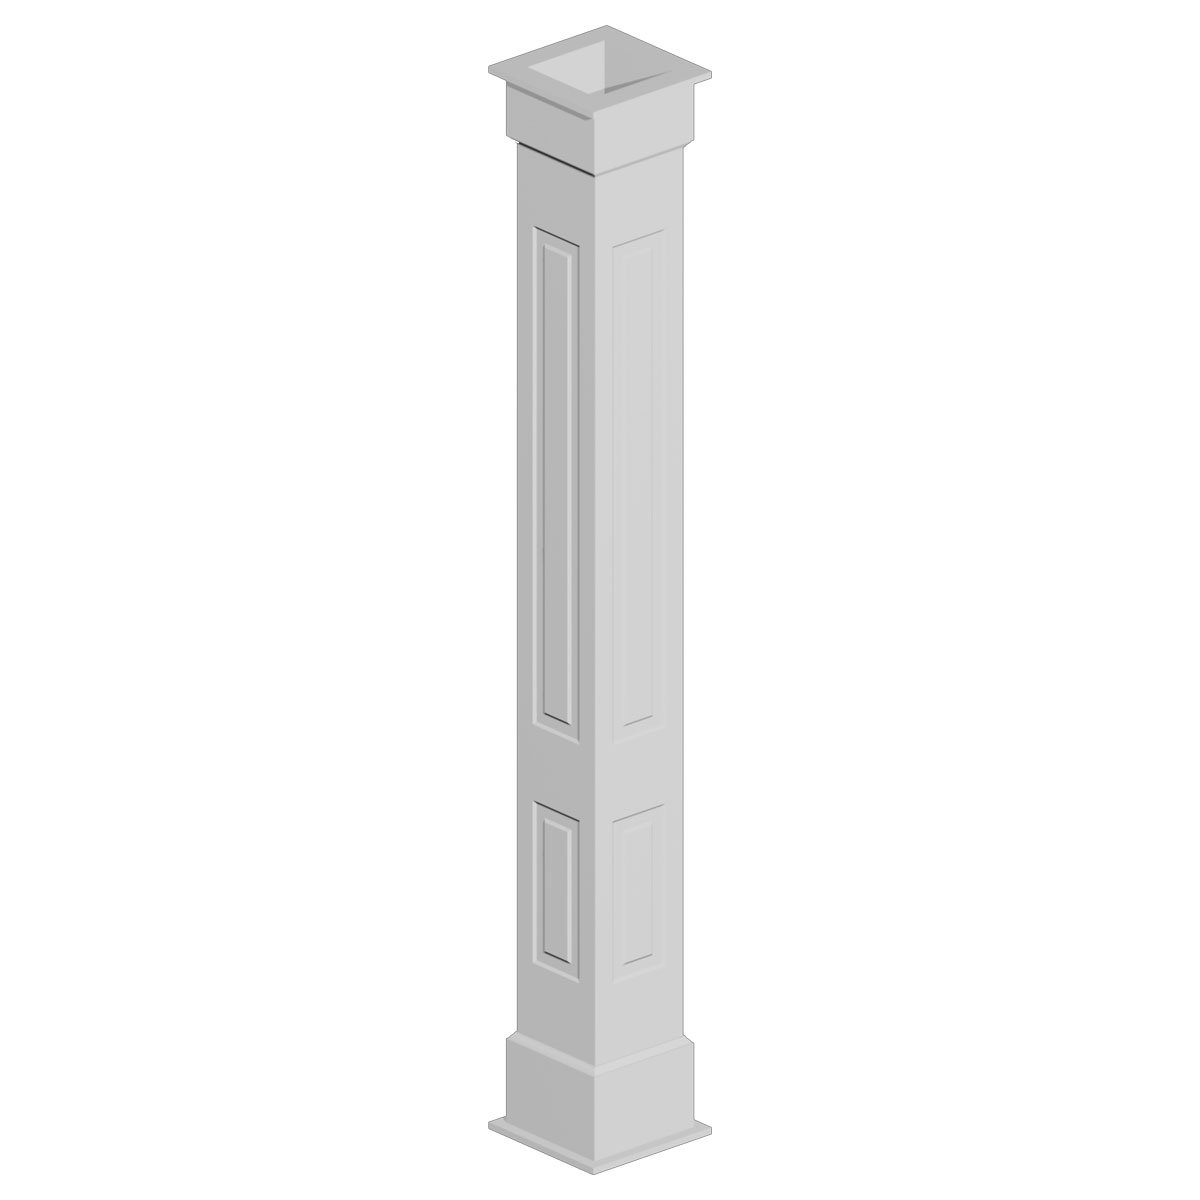 COLUMN WRAP KIT 12X108 RP 1BX, NON TAPERED RAISED PANEL